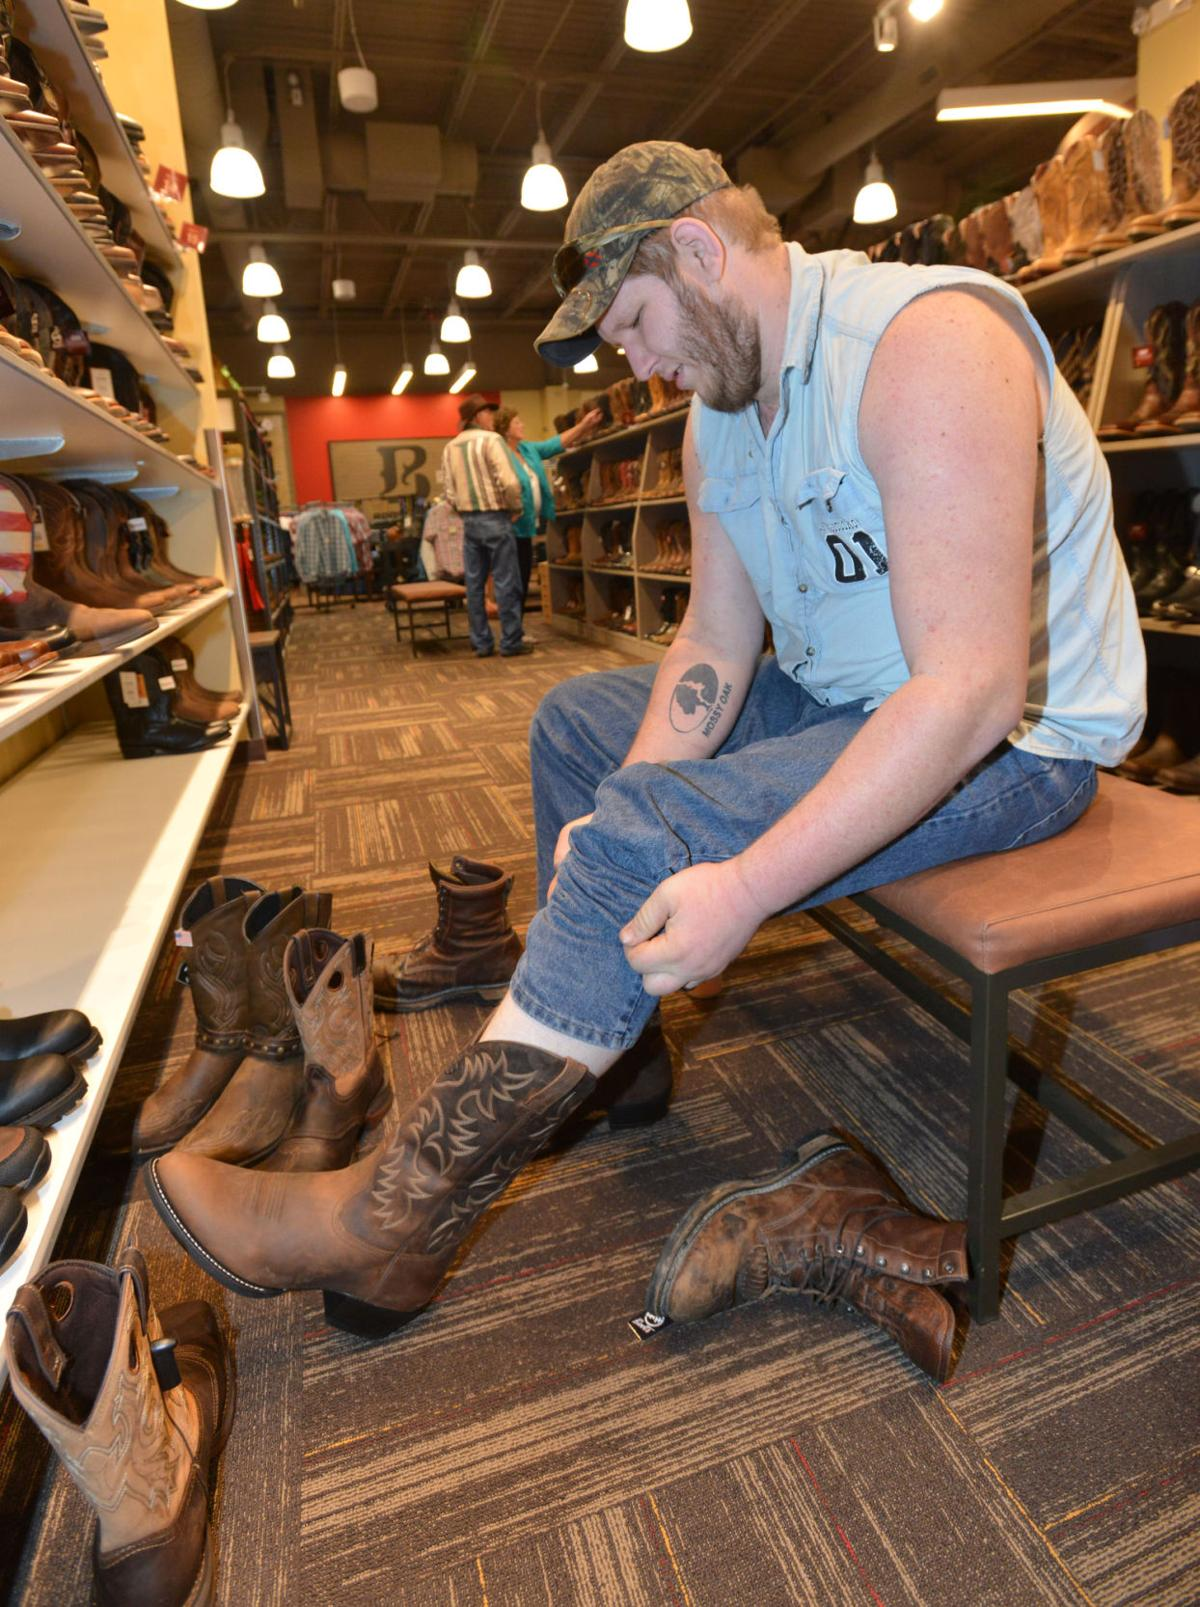 26677a68eea Boot Barn celebrates another grand opening | News | heraldcourier.com